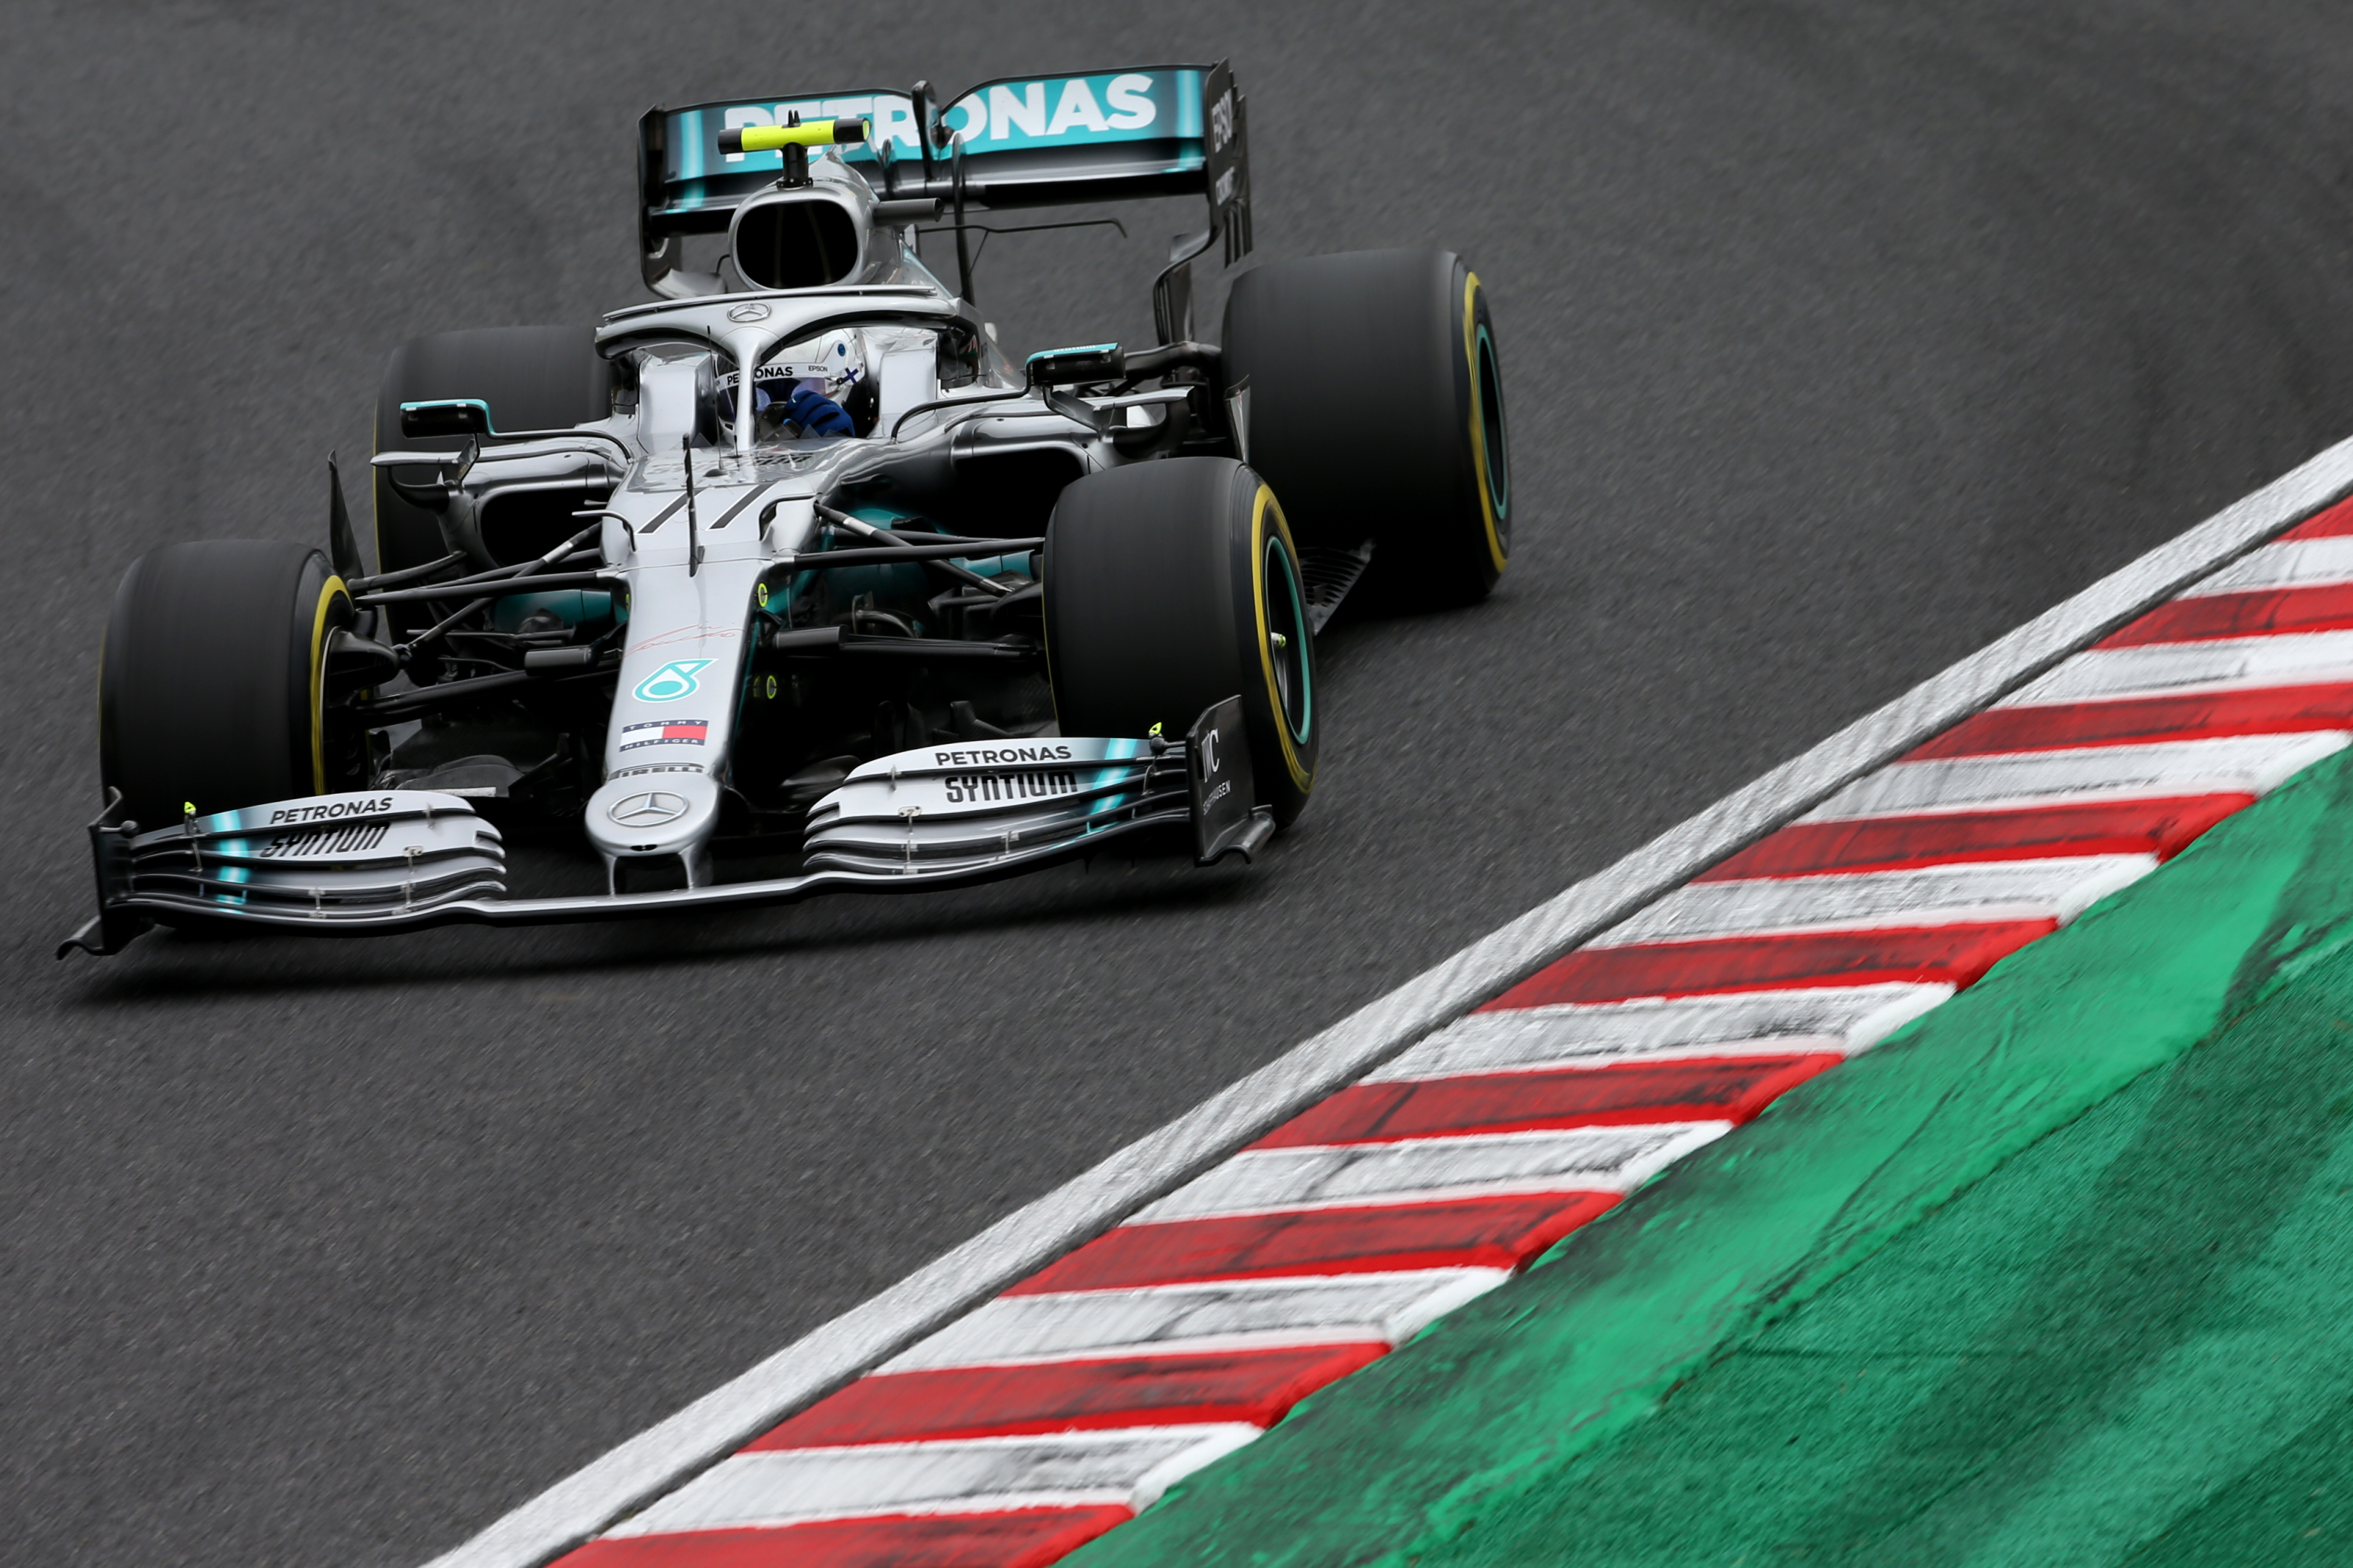 Formula 1 Fp2 To Set Japan Starting Grid If Rescheduled Qualifying Is Canceled